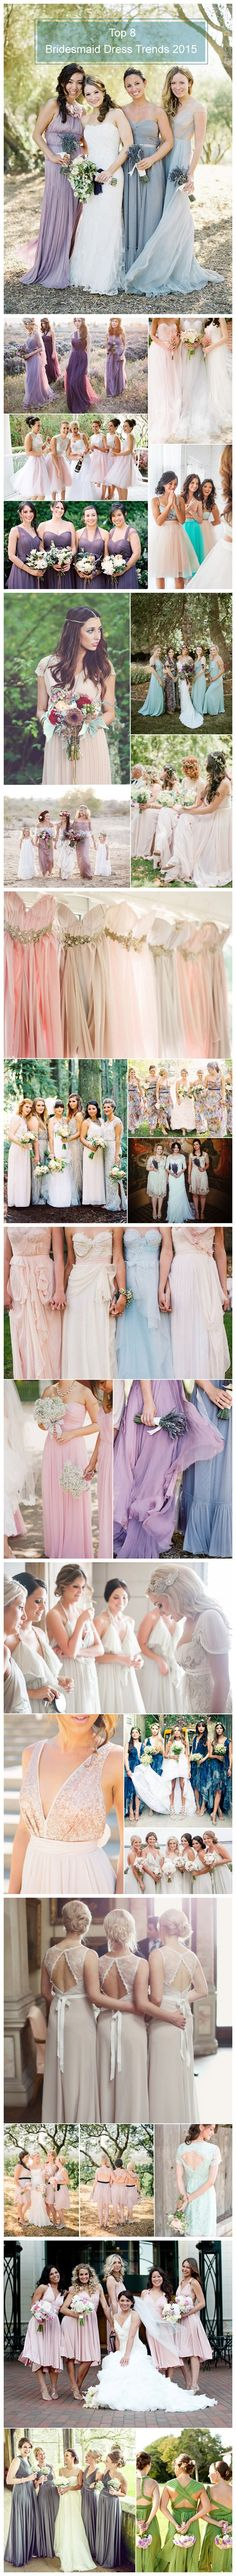 top 8 bridesmaid dresses trends for wedding 2015